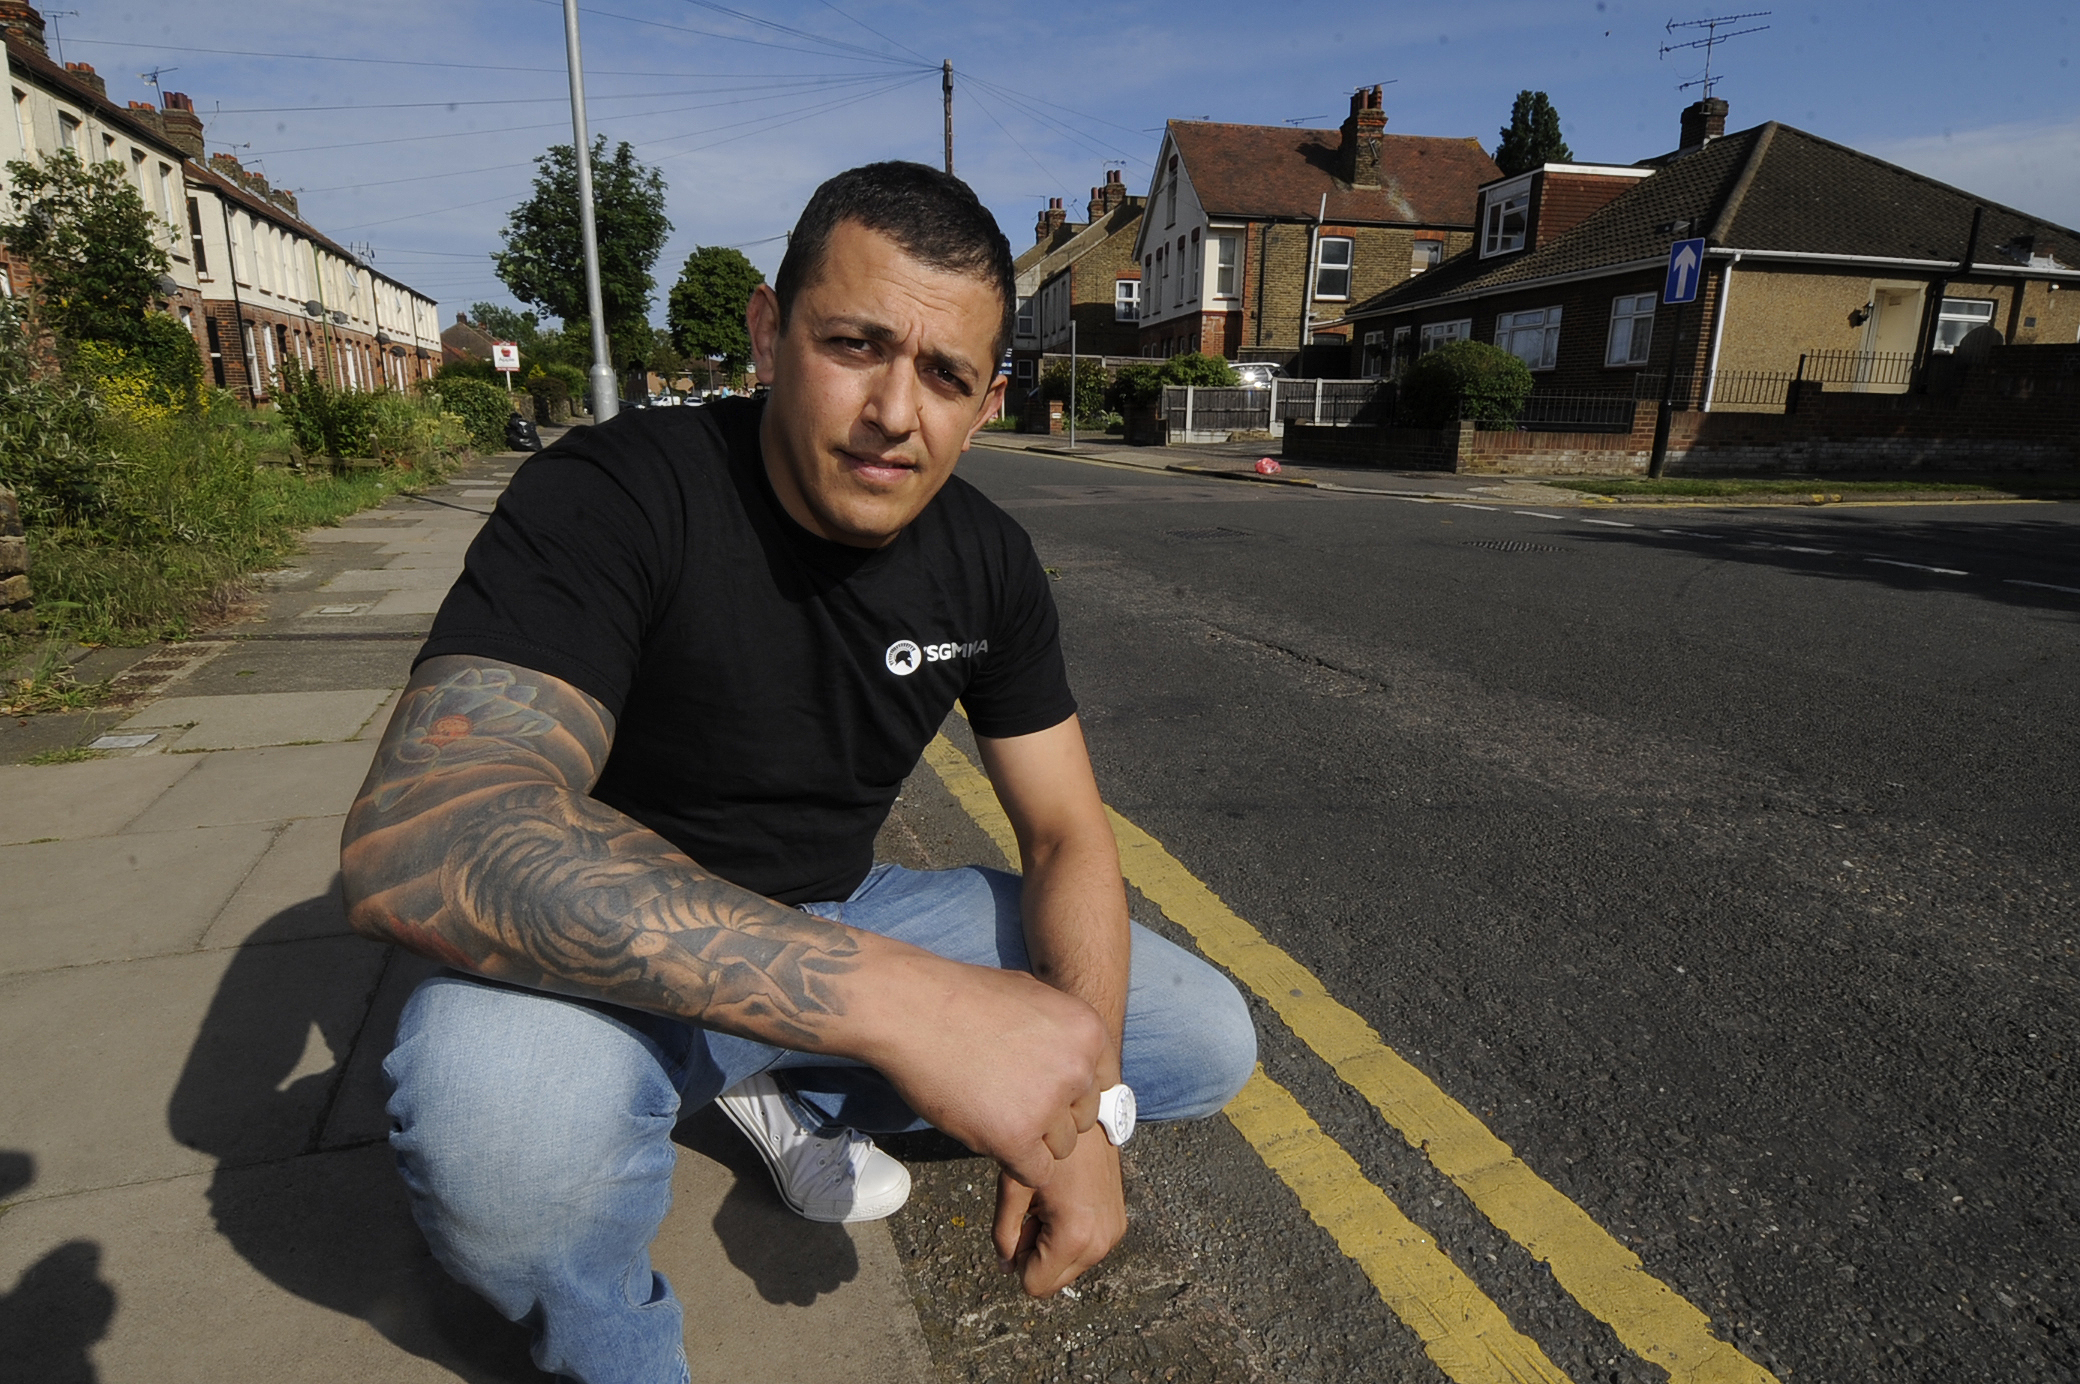 Dan a hero again after rushing to aid of sick man lying in the road